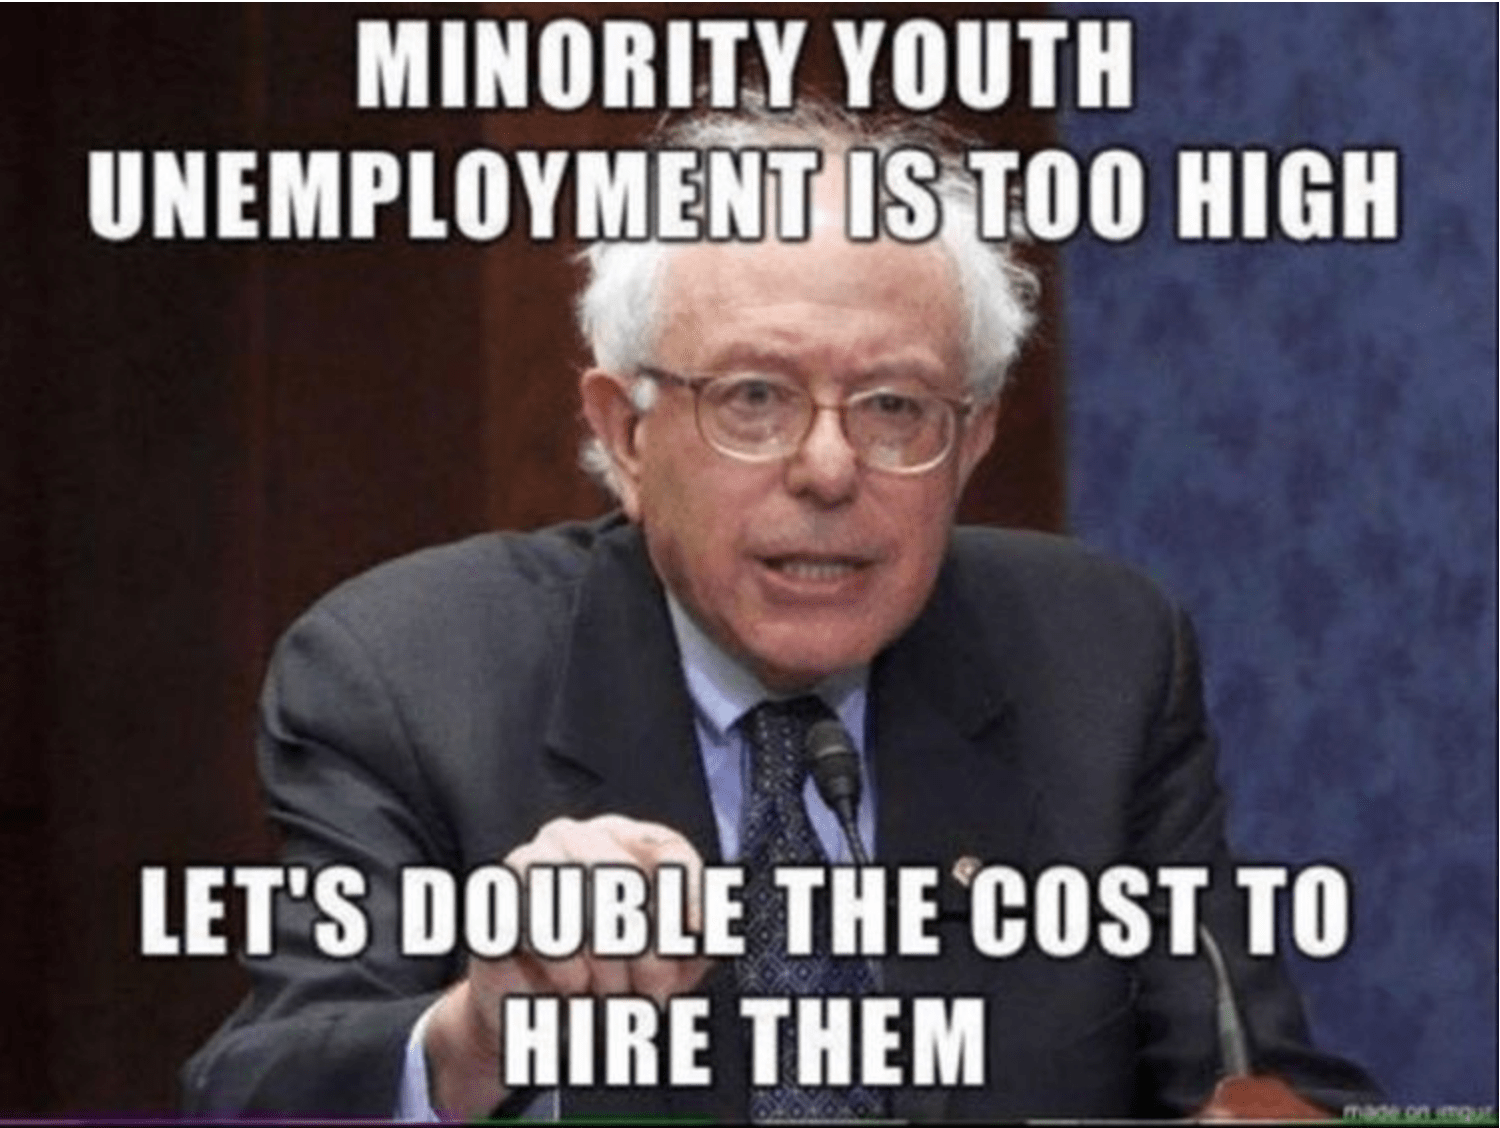 Senator Bernie Sanders Memes And Images Thefunnyconservative Png 1500x1128 Political Funny Socialist Liberal Birthday Meme